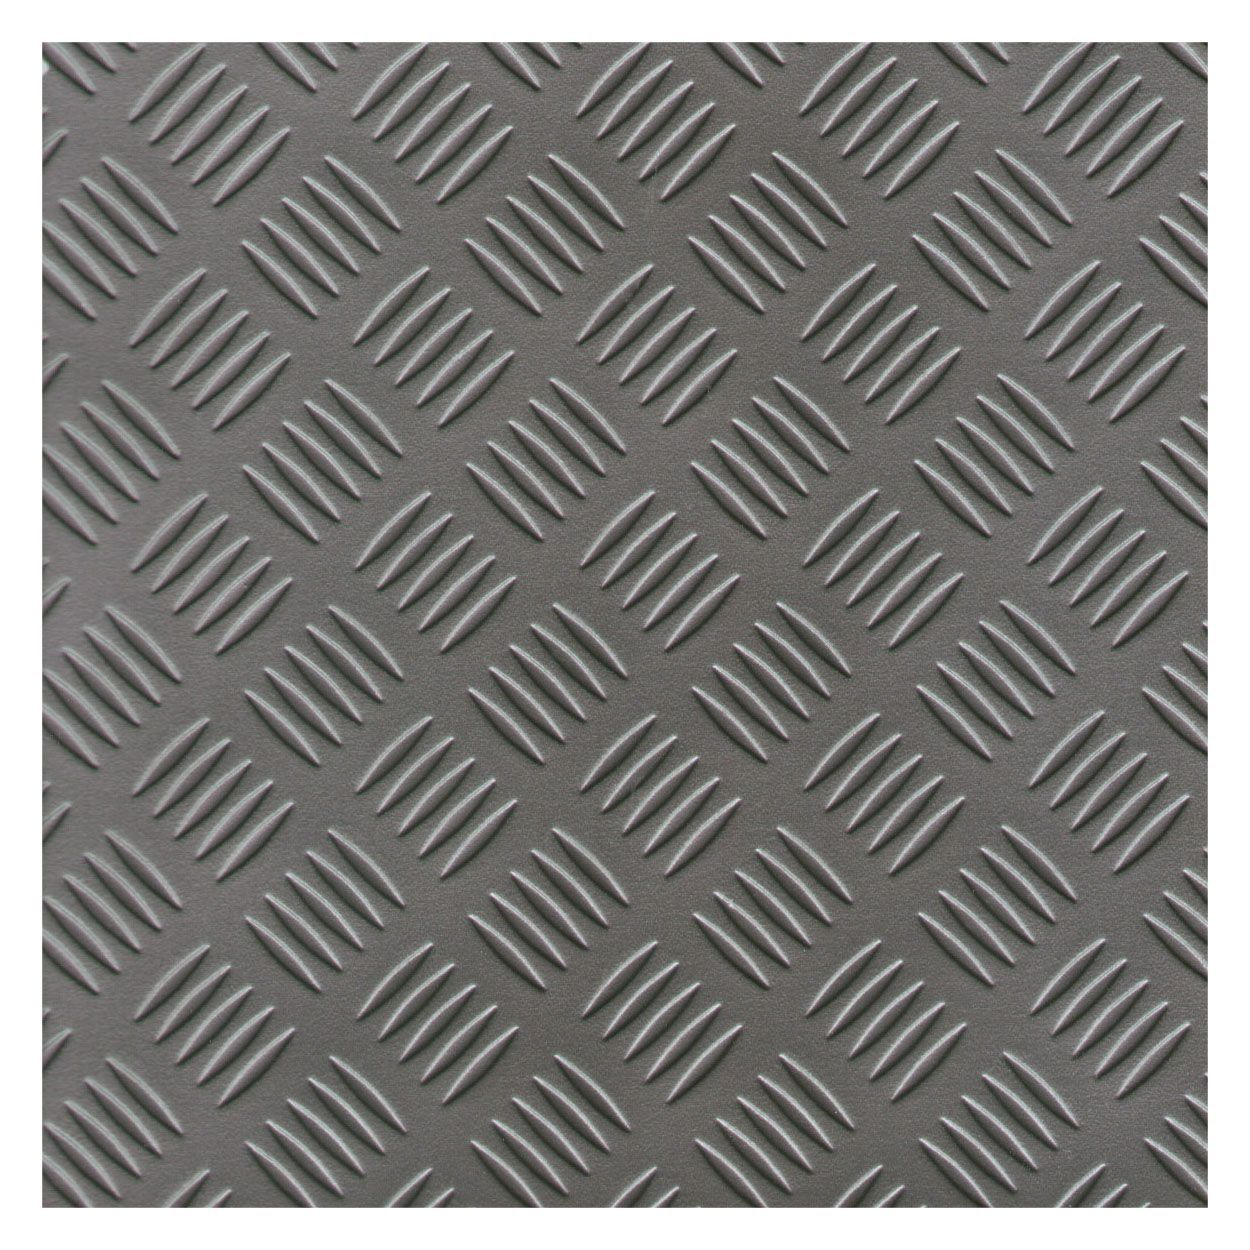 Colours Alectories Anthracite Metallic Effect Self